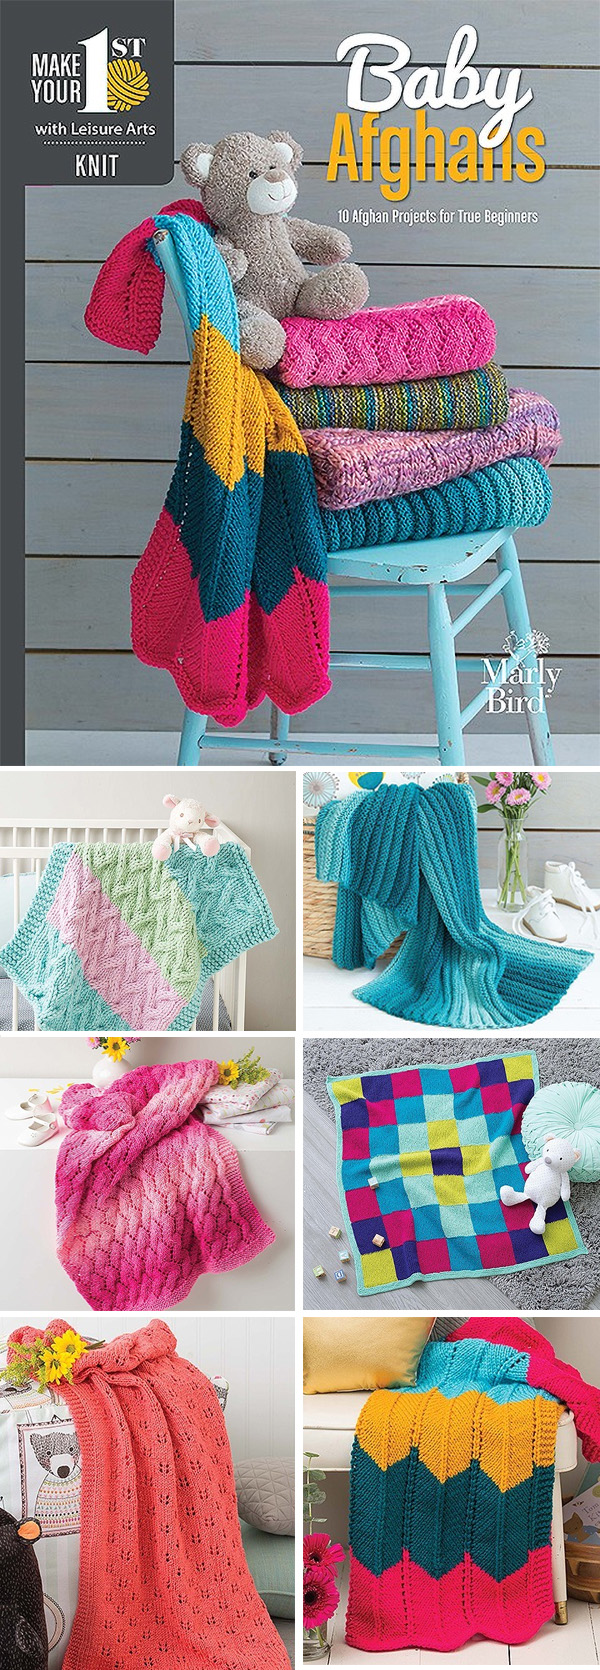 102f8586b307 Make Your First Knit Baby Afghans - 10 Afghan Projects for True Beginners